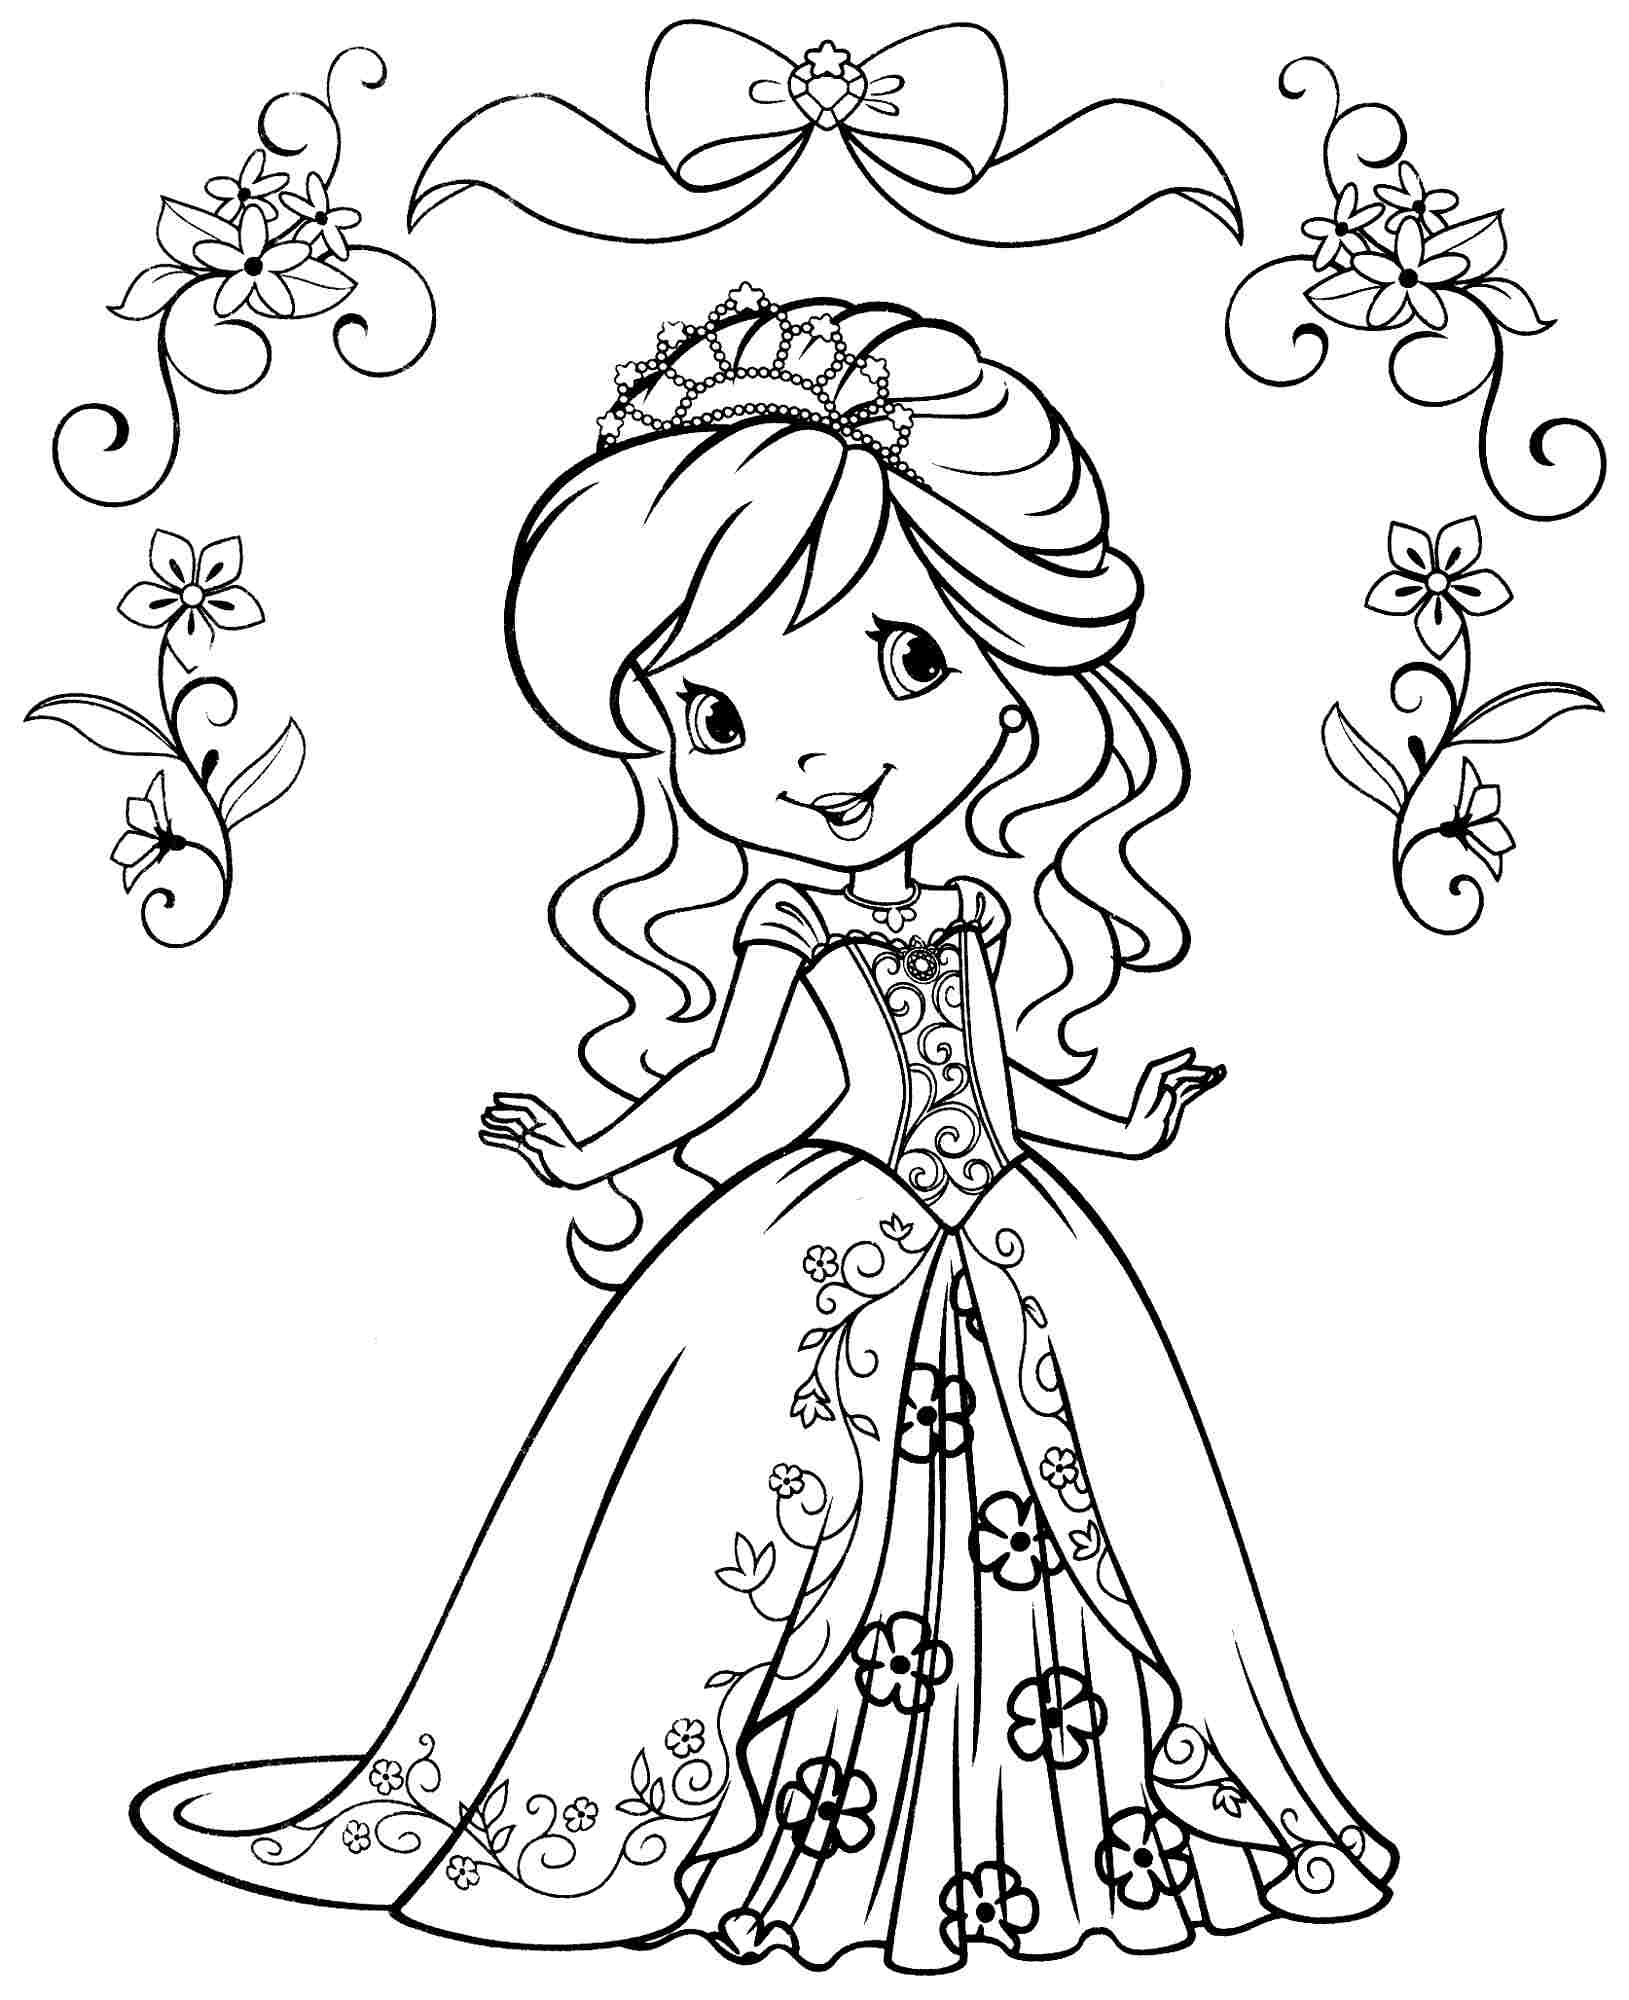 Coloring Pages For Girls: Strawberry Shortcake Valentine Coloring Pages Download And